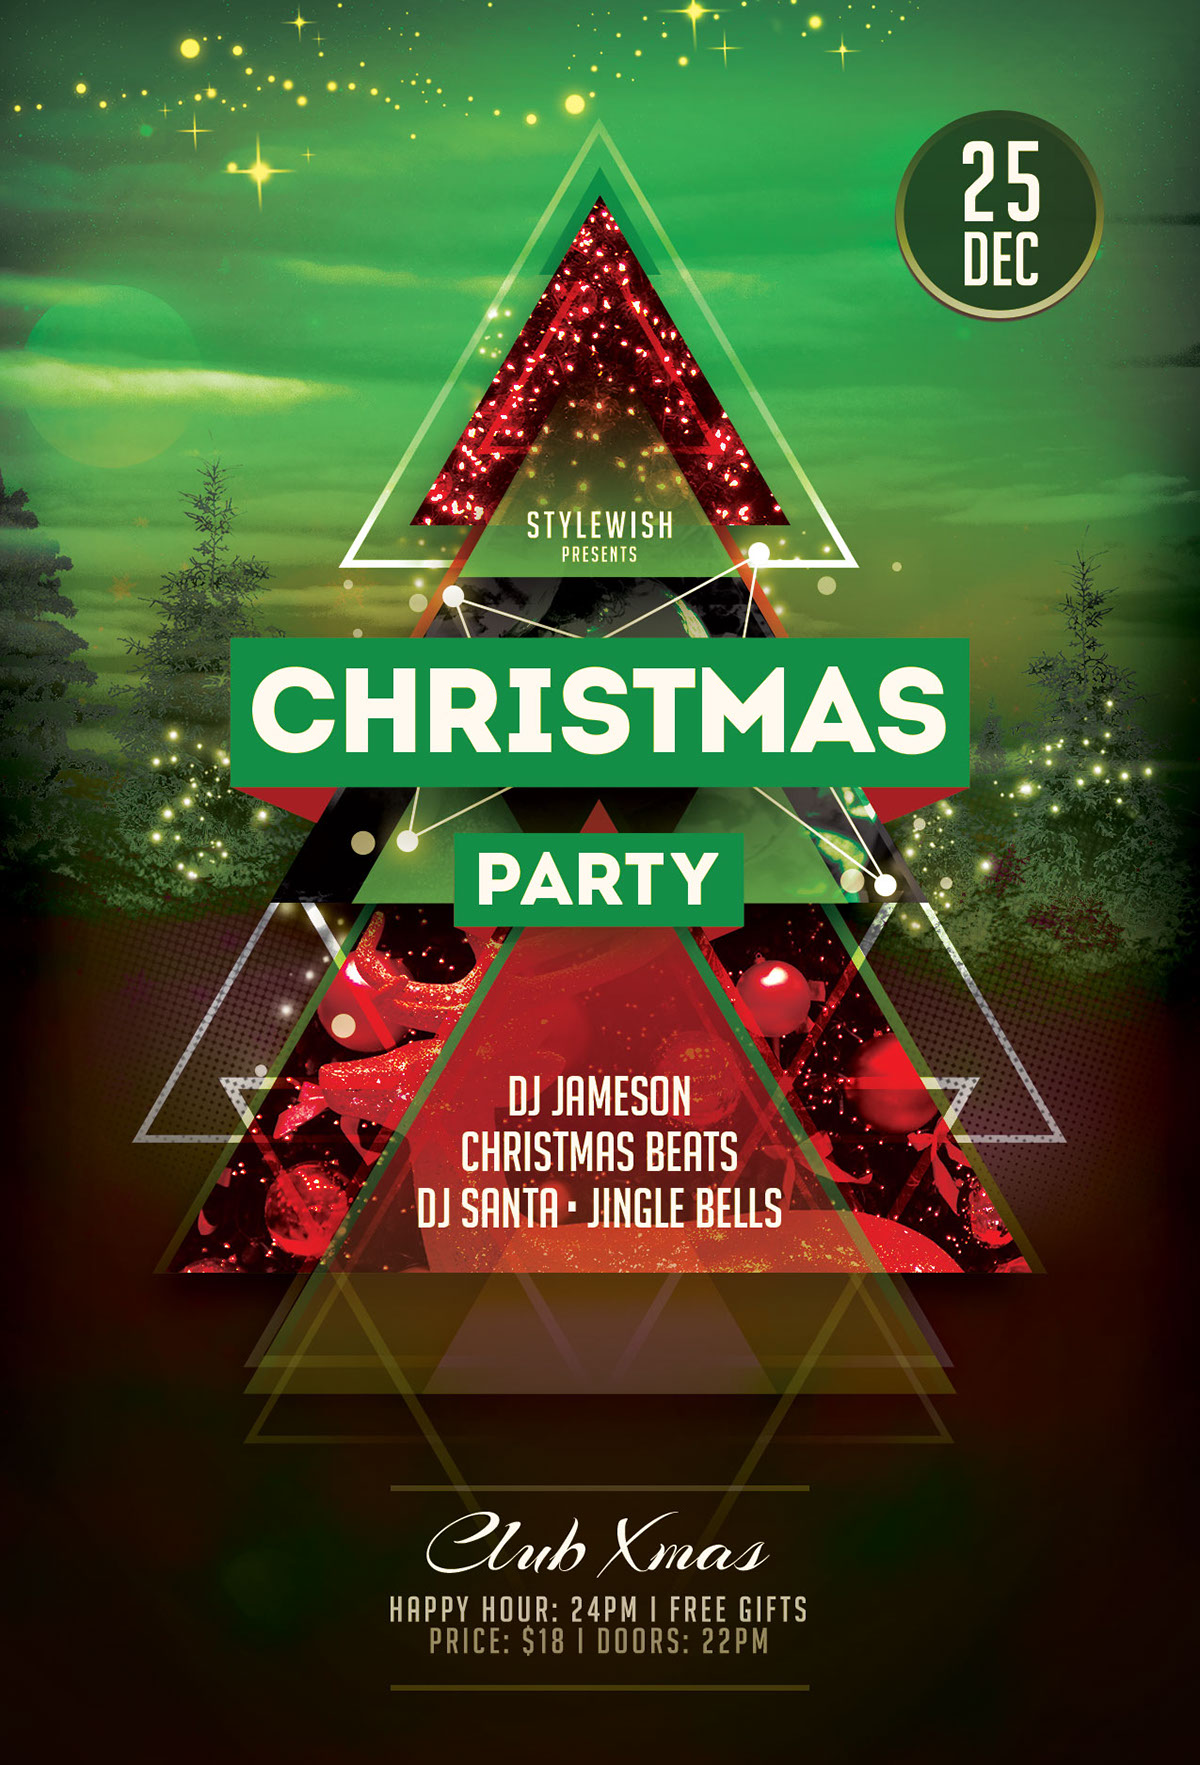 Christmas Party Flyer.Christmas Party Flyer Template On Behance